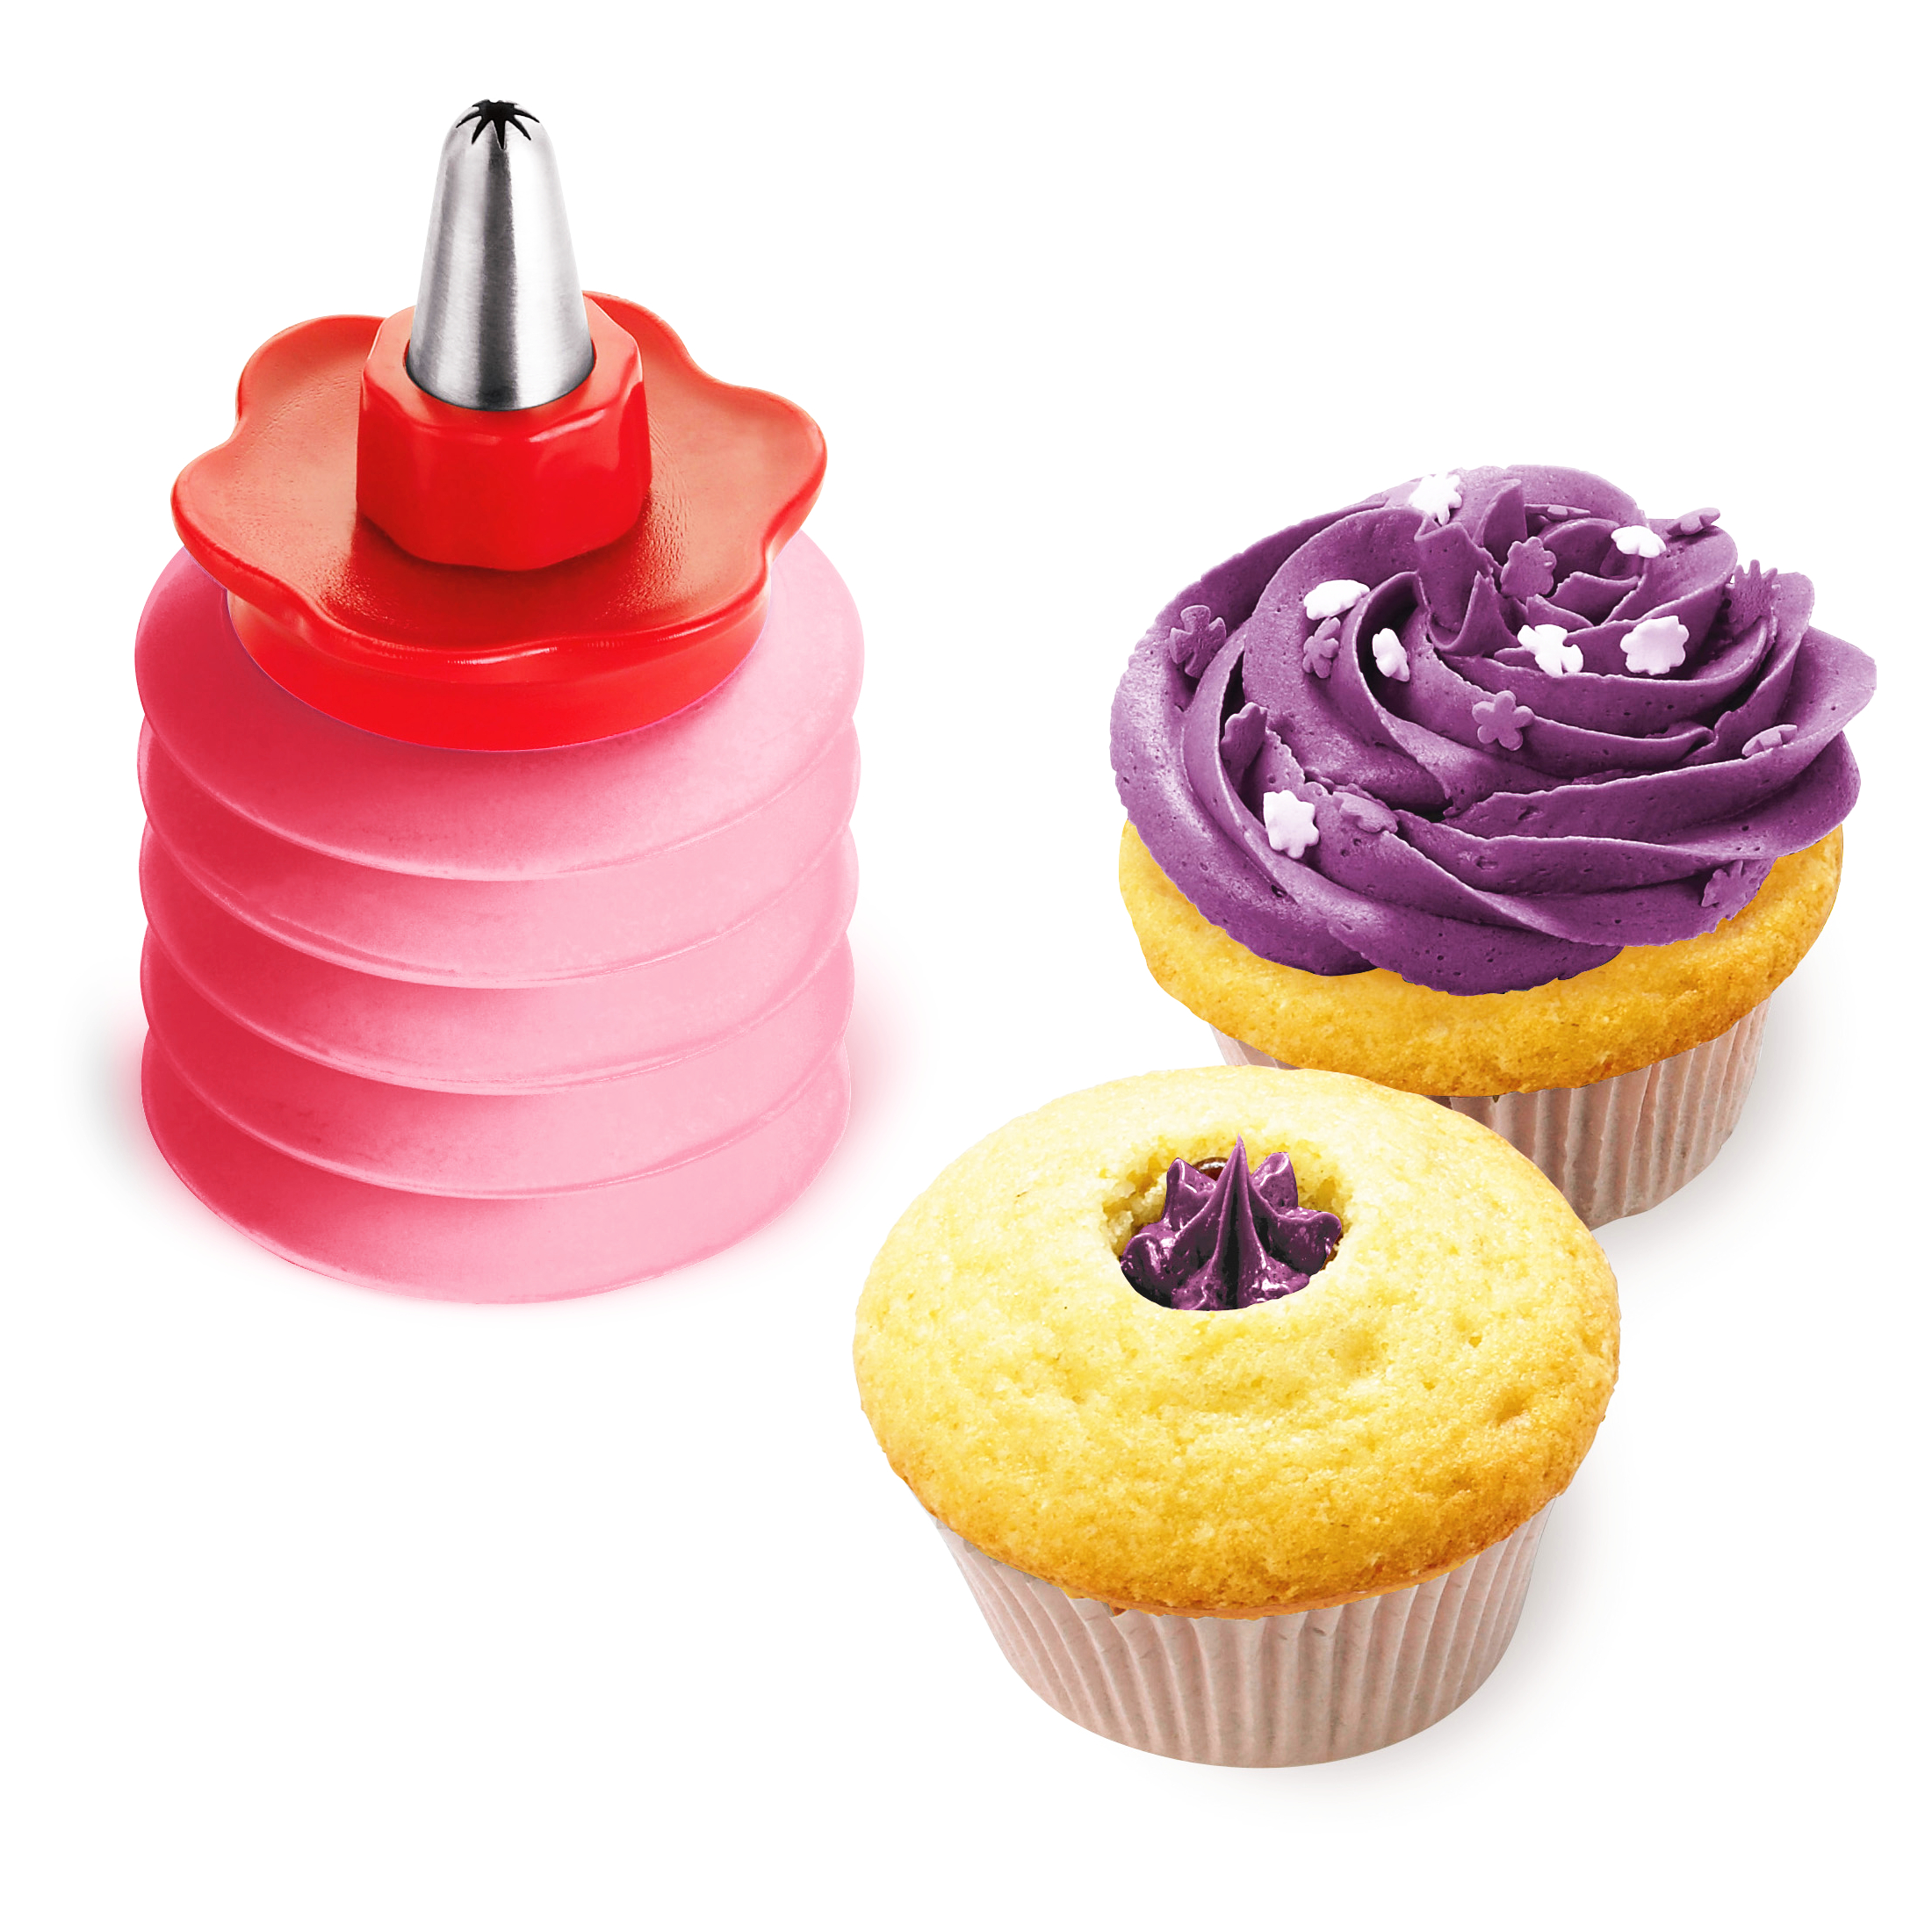 Cuisipro Icing Bottle With Floral Tip